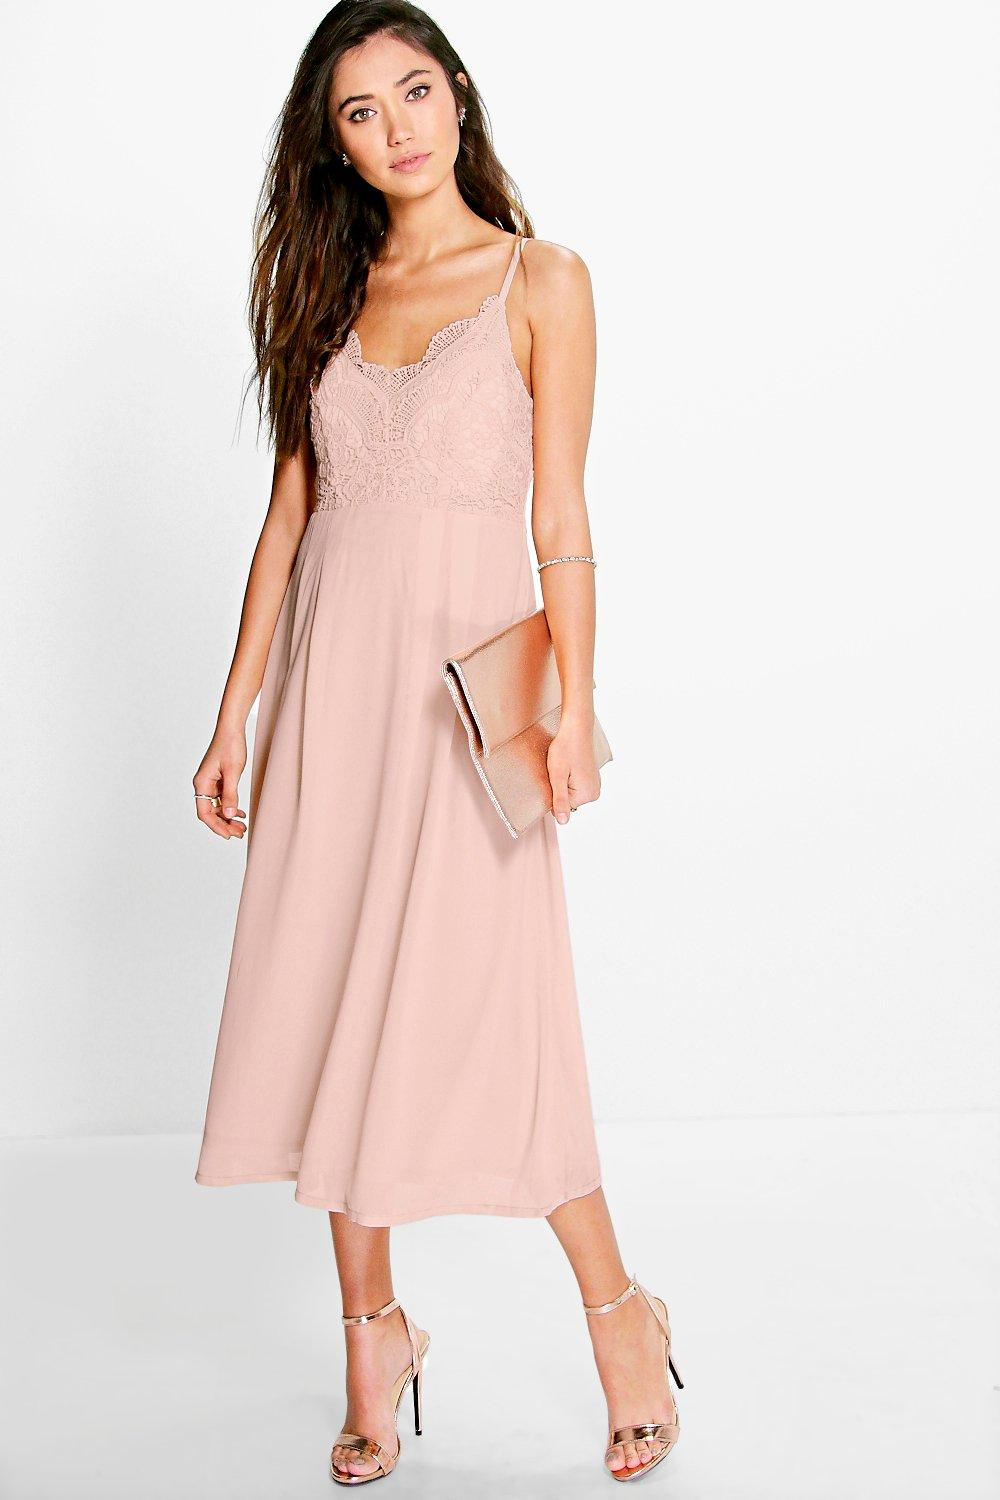 Petite Maxi Dresses On Sale - Gallery Fashion